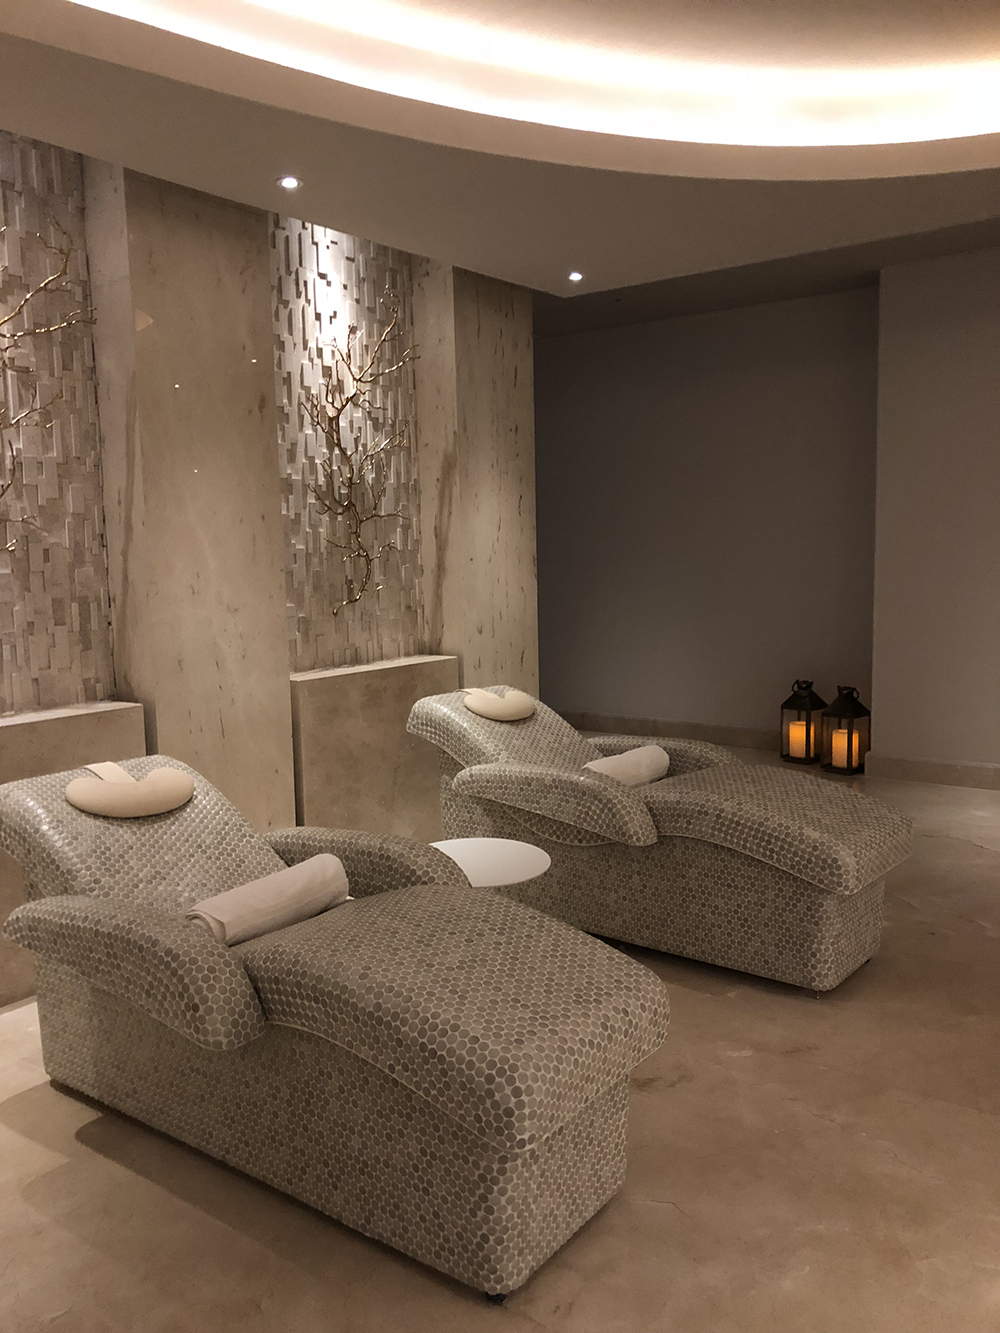 The heated stone spa beds are relaxing and comfortable.